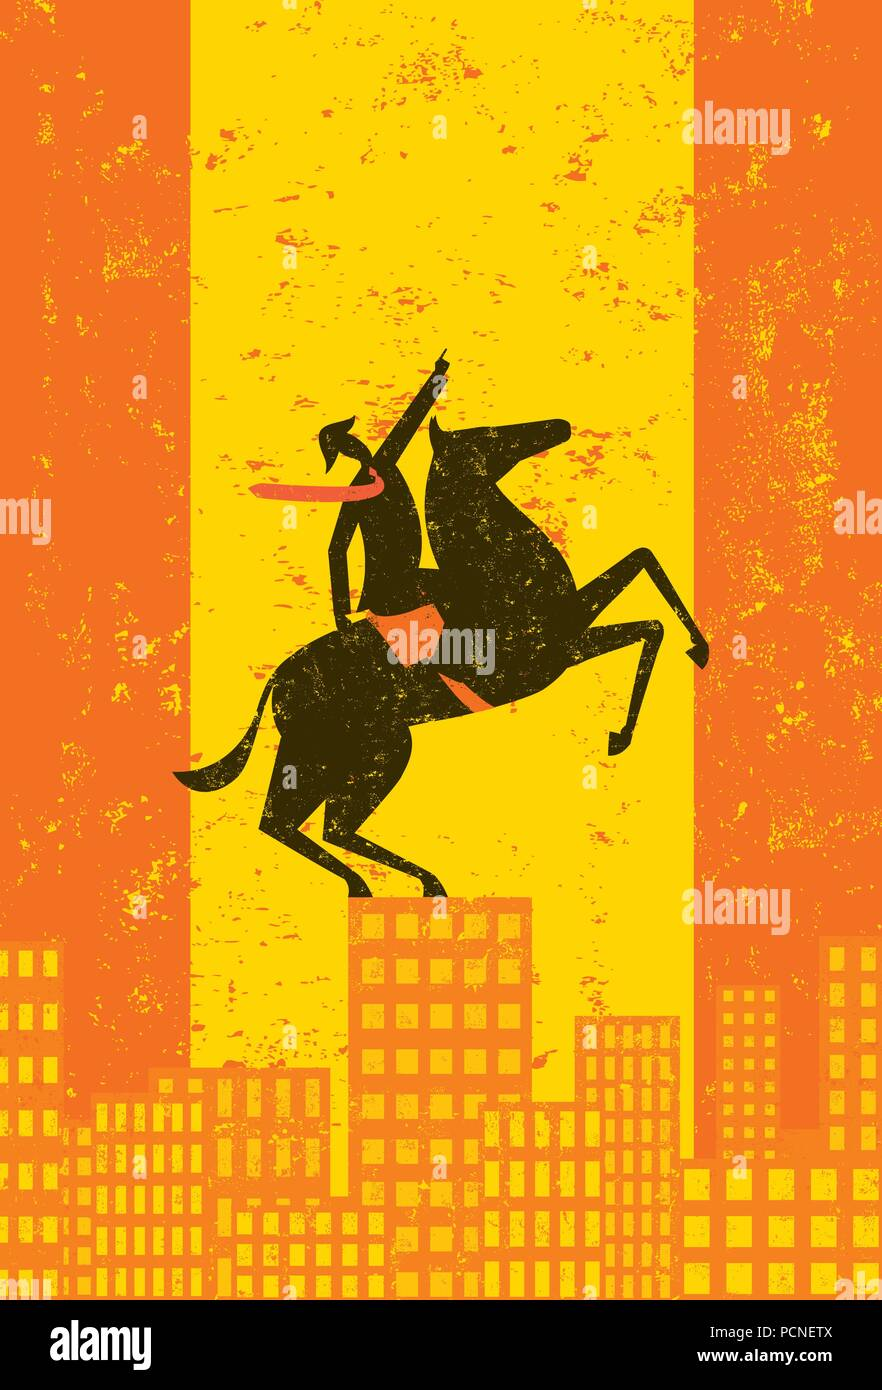 Business Titan. A business leader, looking Napoleon-esque on his horse, points upward on top of a city skyline. - Stock Vector